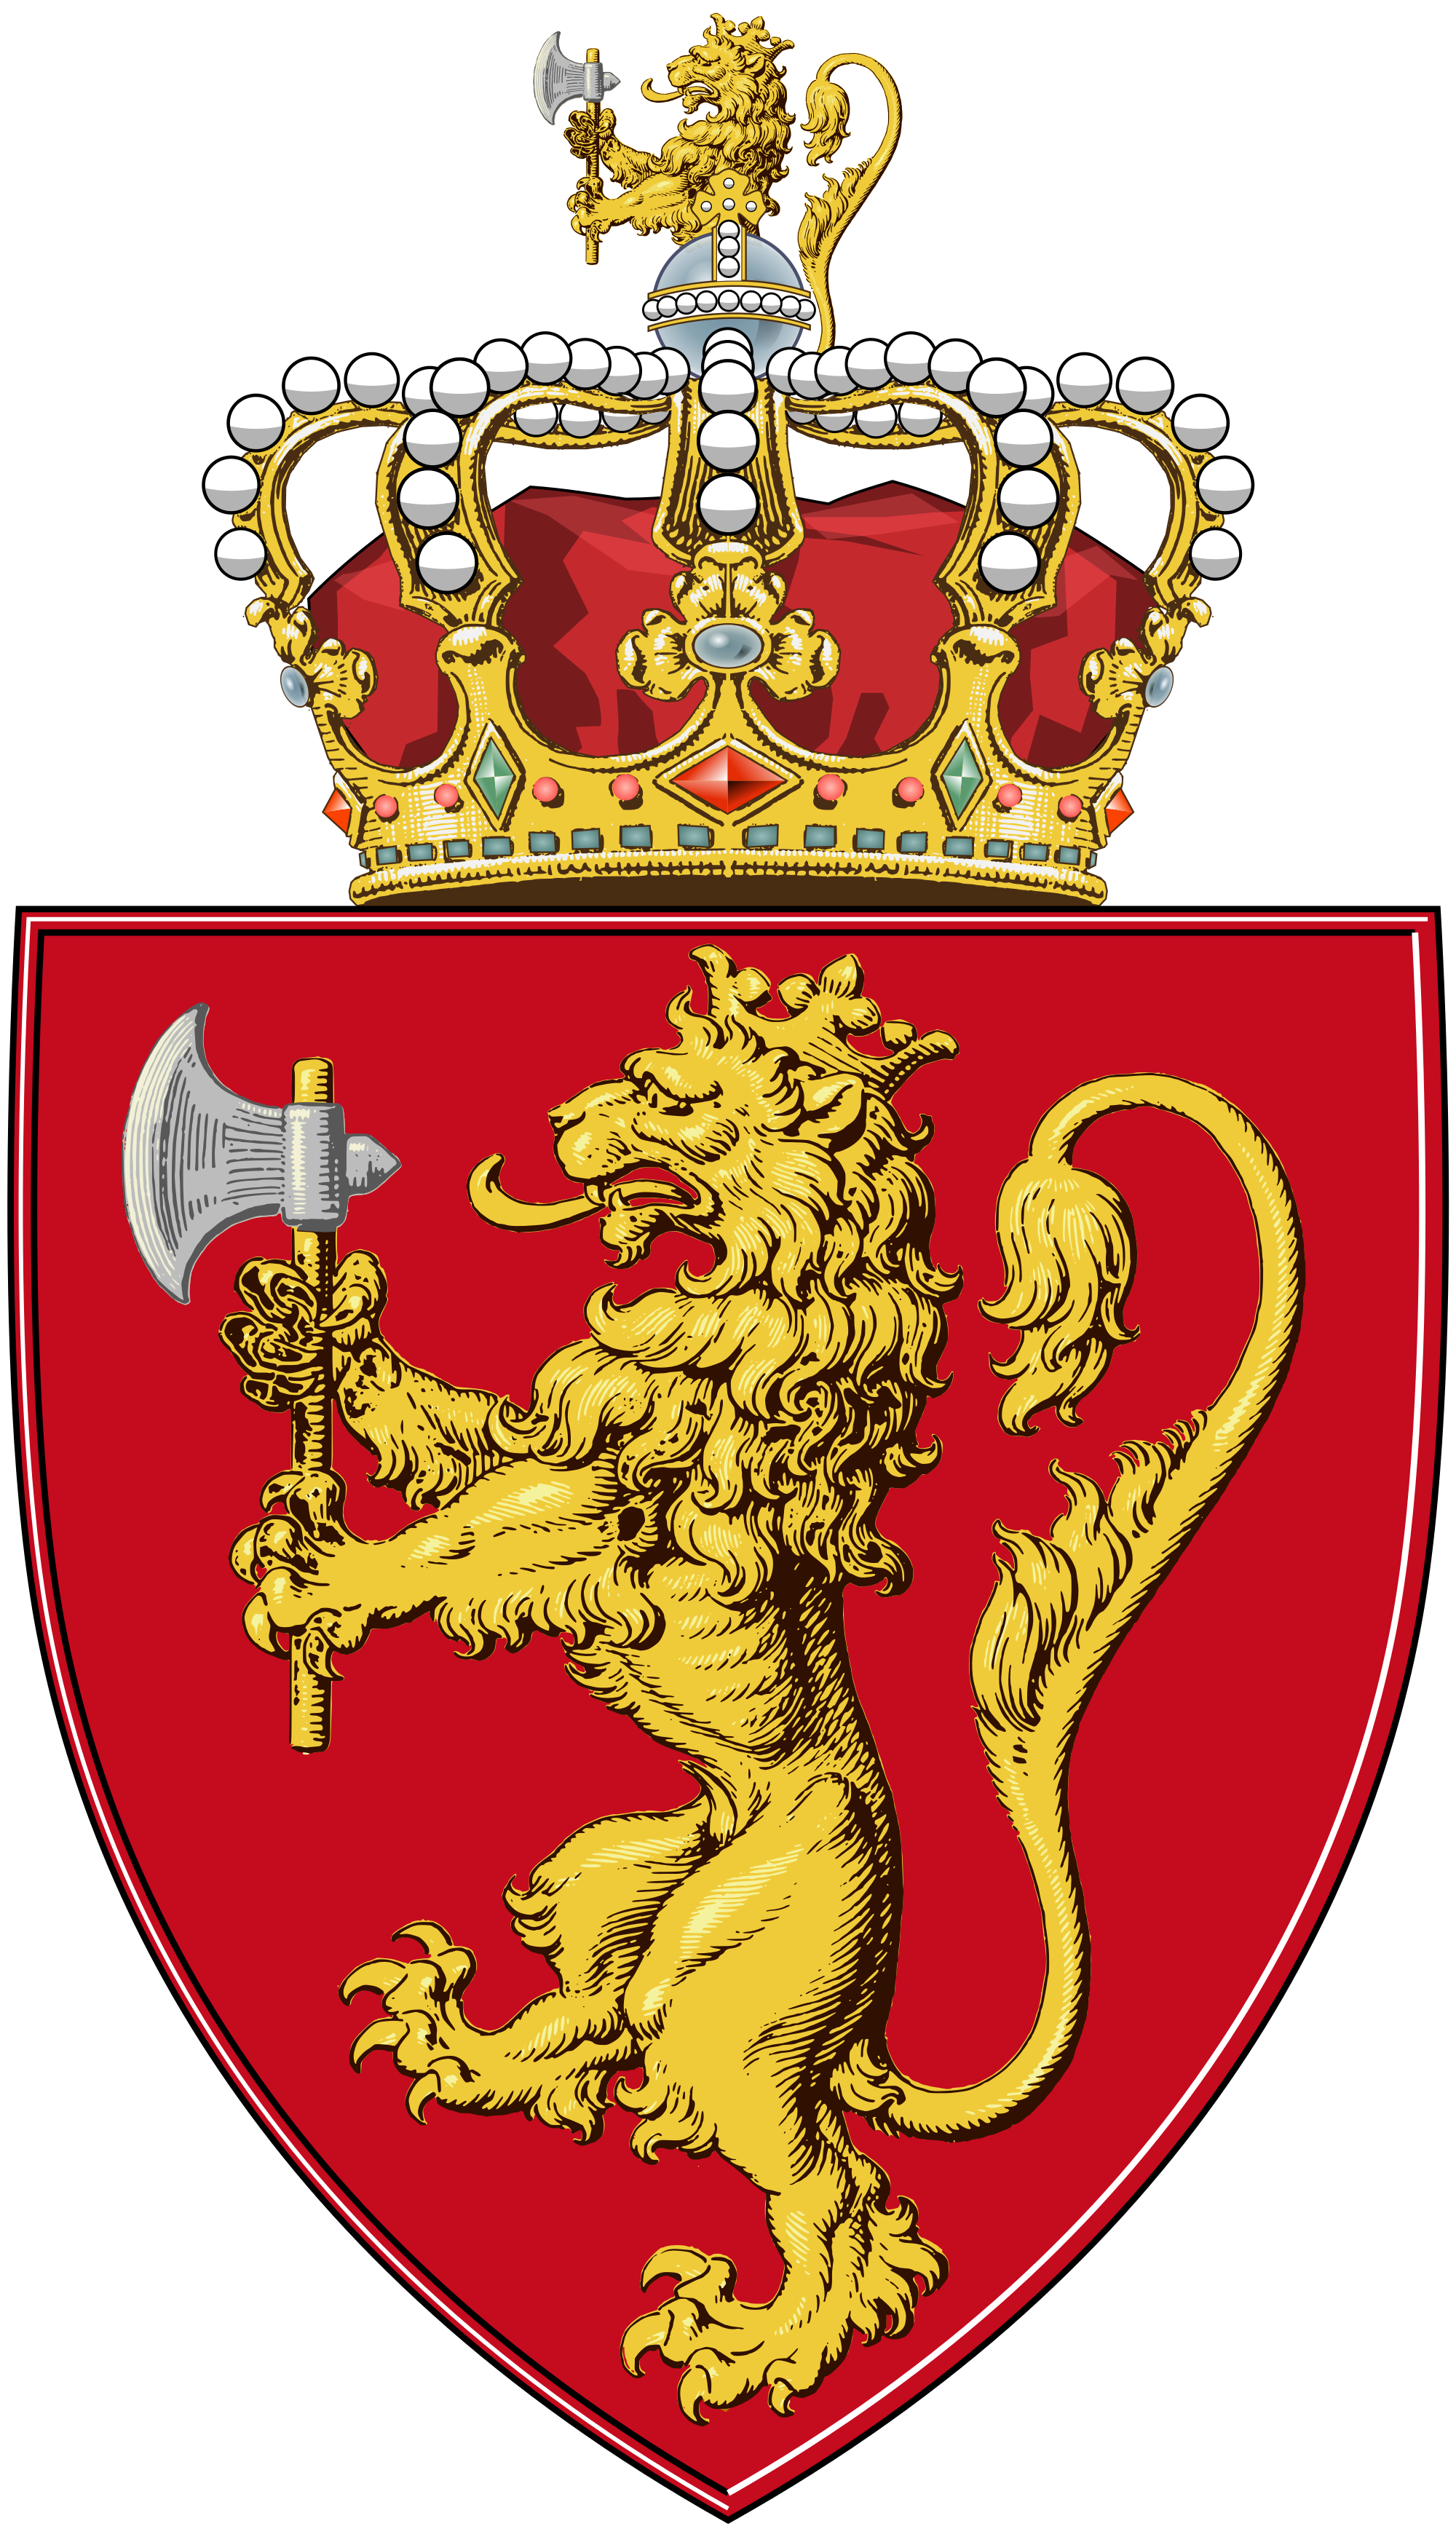 Coat of arms norway. Wing clipart family crest